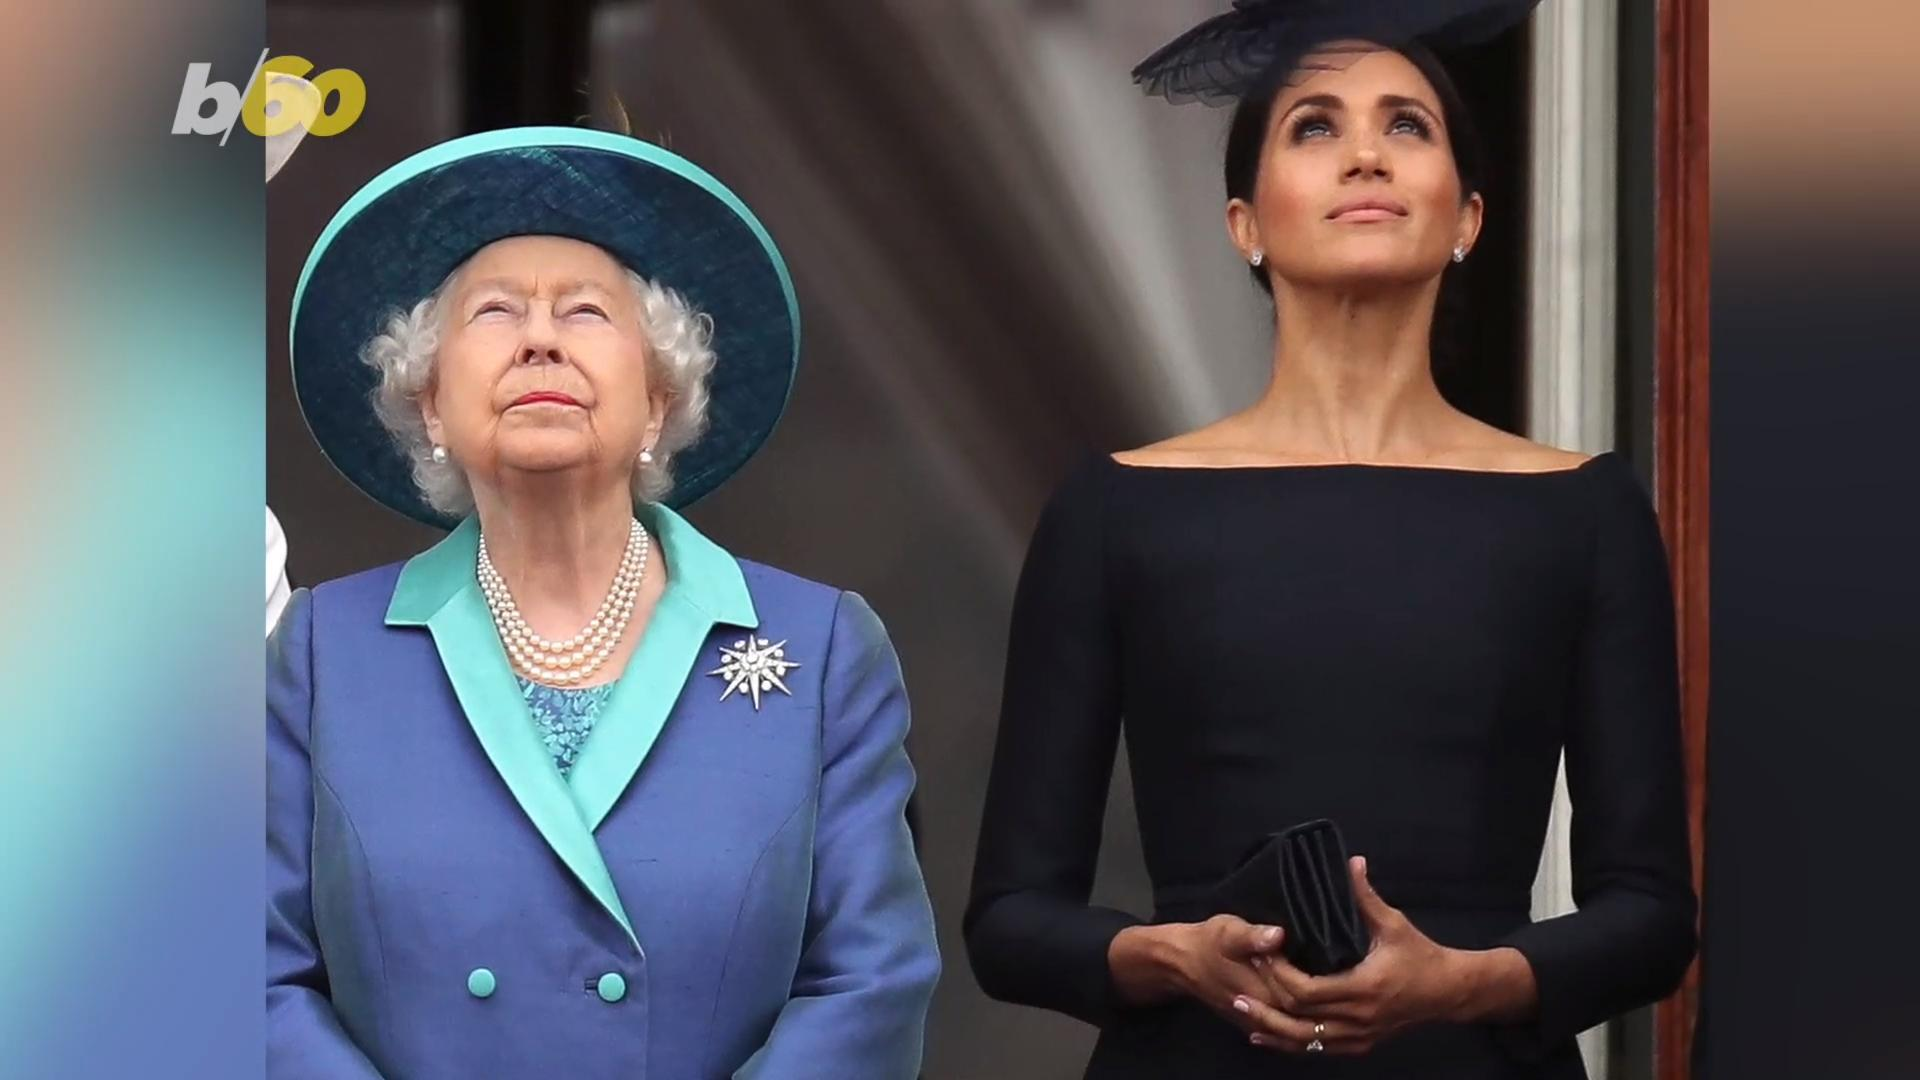 How tall is Meghan Markle? The duchess' height is sort of deceiving